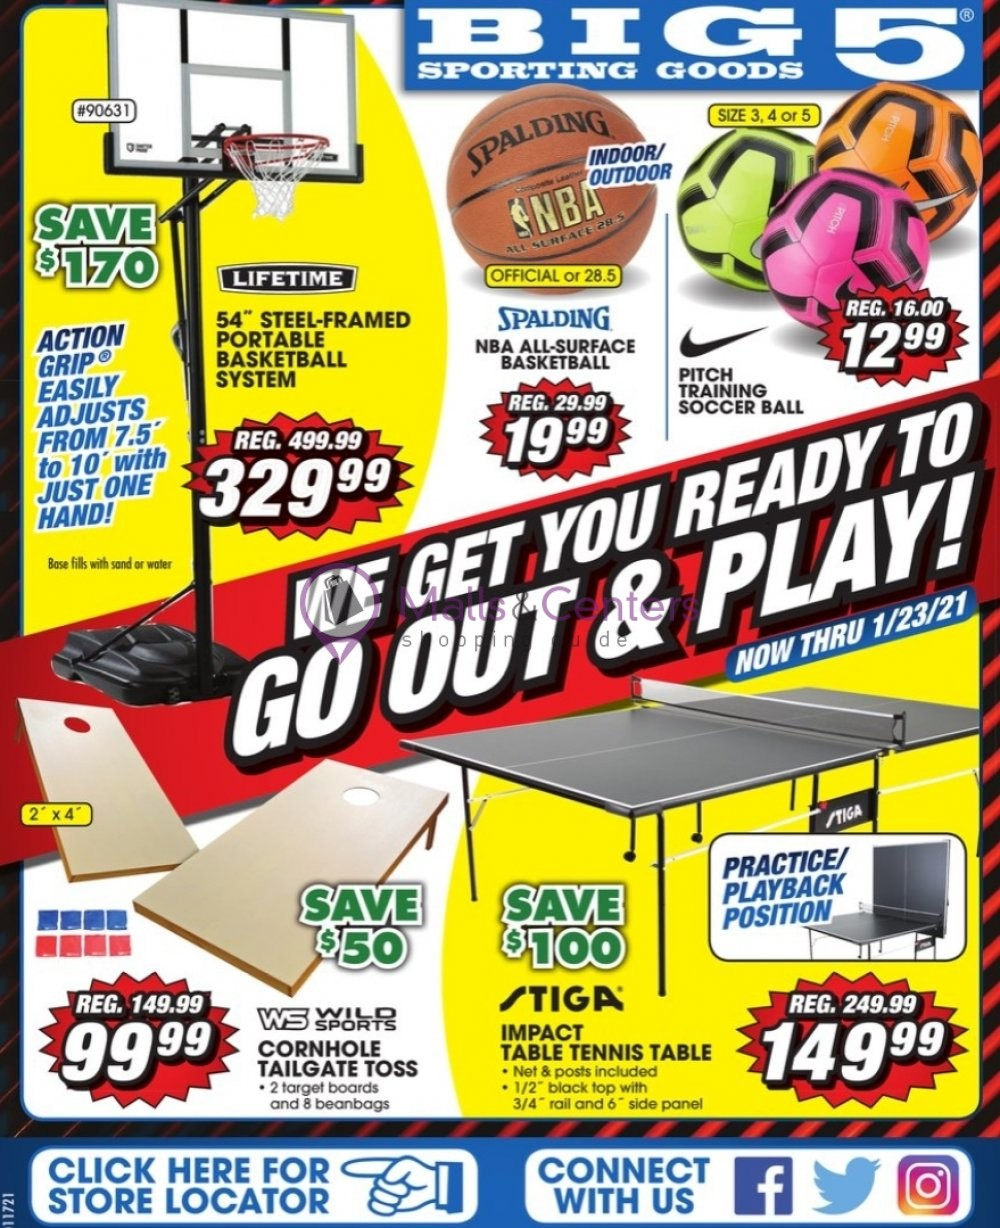 weekly ads Big 5 Sporting Goods - page 1 - mallscenters.com